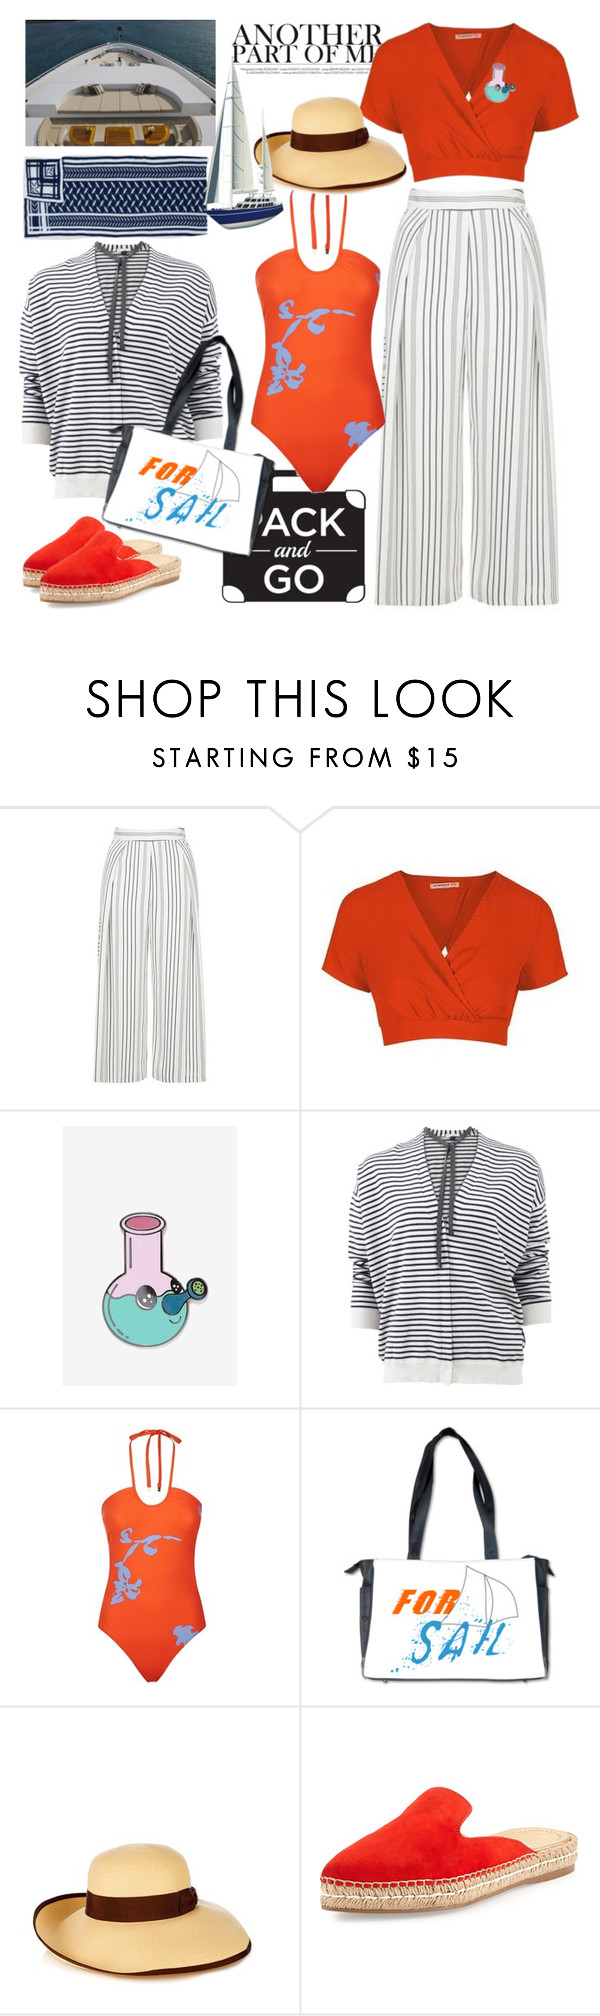 """""""Labor Day  Boat Trip"""" by ellie366 ❤ liked on Polyvore featuring Topshop, Big Bud Press, Brunello Cucinelli, Kismet, Tory Burch, Gucci, Prada, stripes, boatTrip and september"""